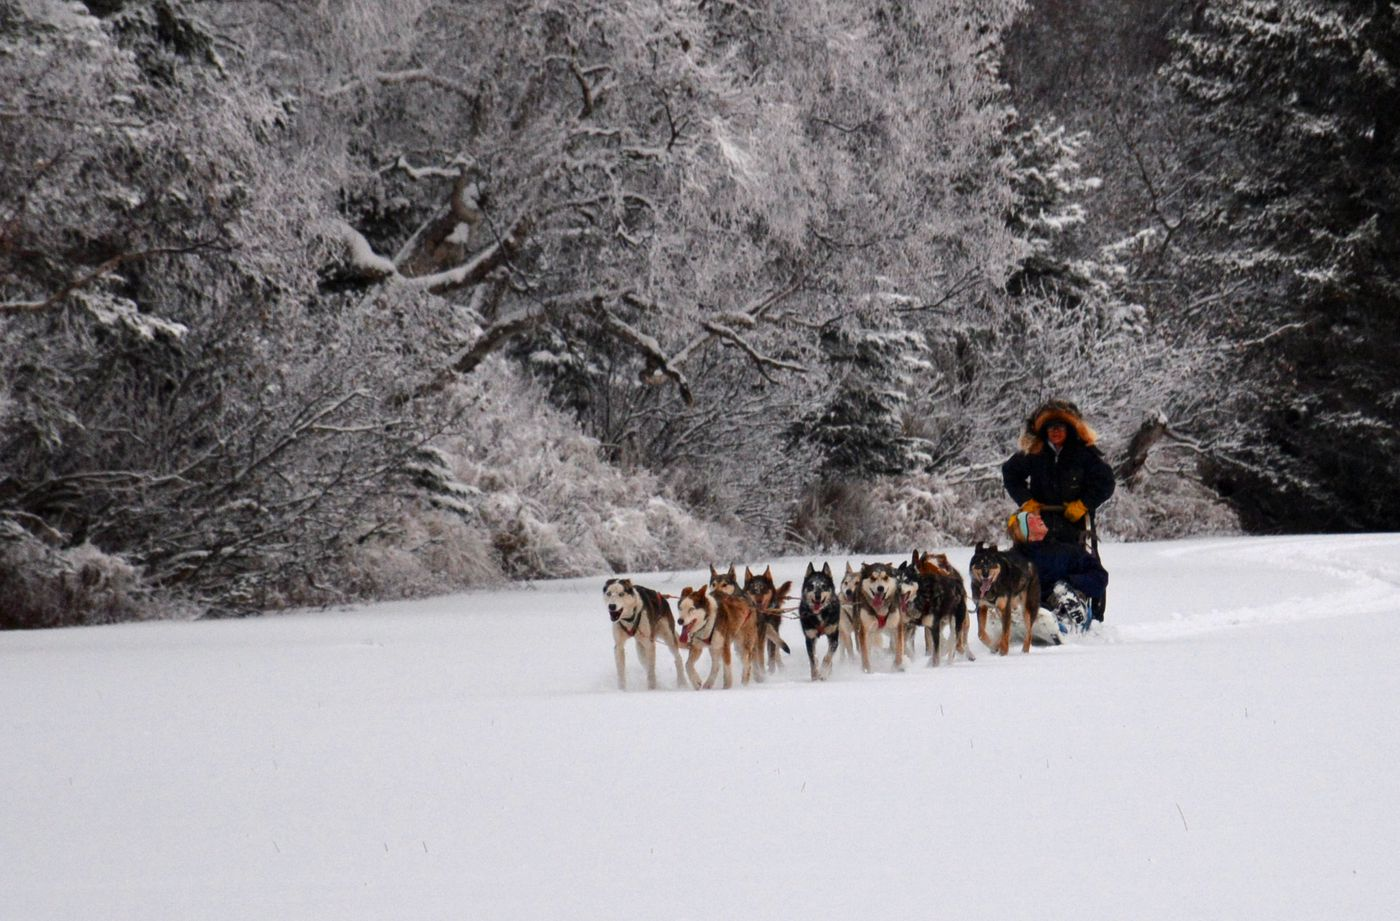 Afina drives a dog team along a frozen lake shore on a frosty winter day. Her host-mom, and Iditarod/Yukon Quest veteran, Colleen Robertia, rides in the sledbag, both for weight and to offer guidance to the still-learning dog driver. (Joseph Robertia)